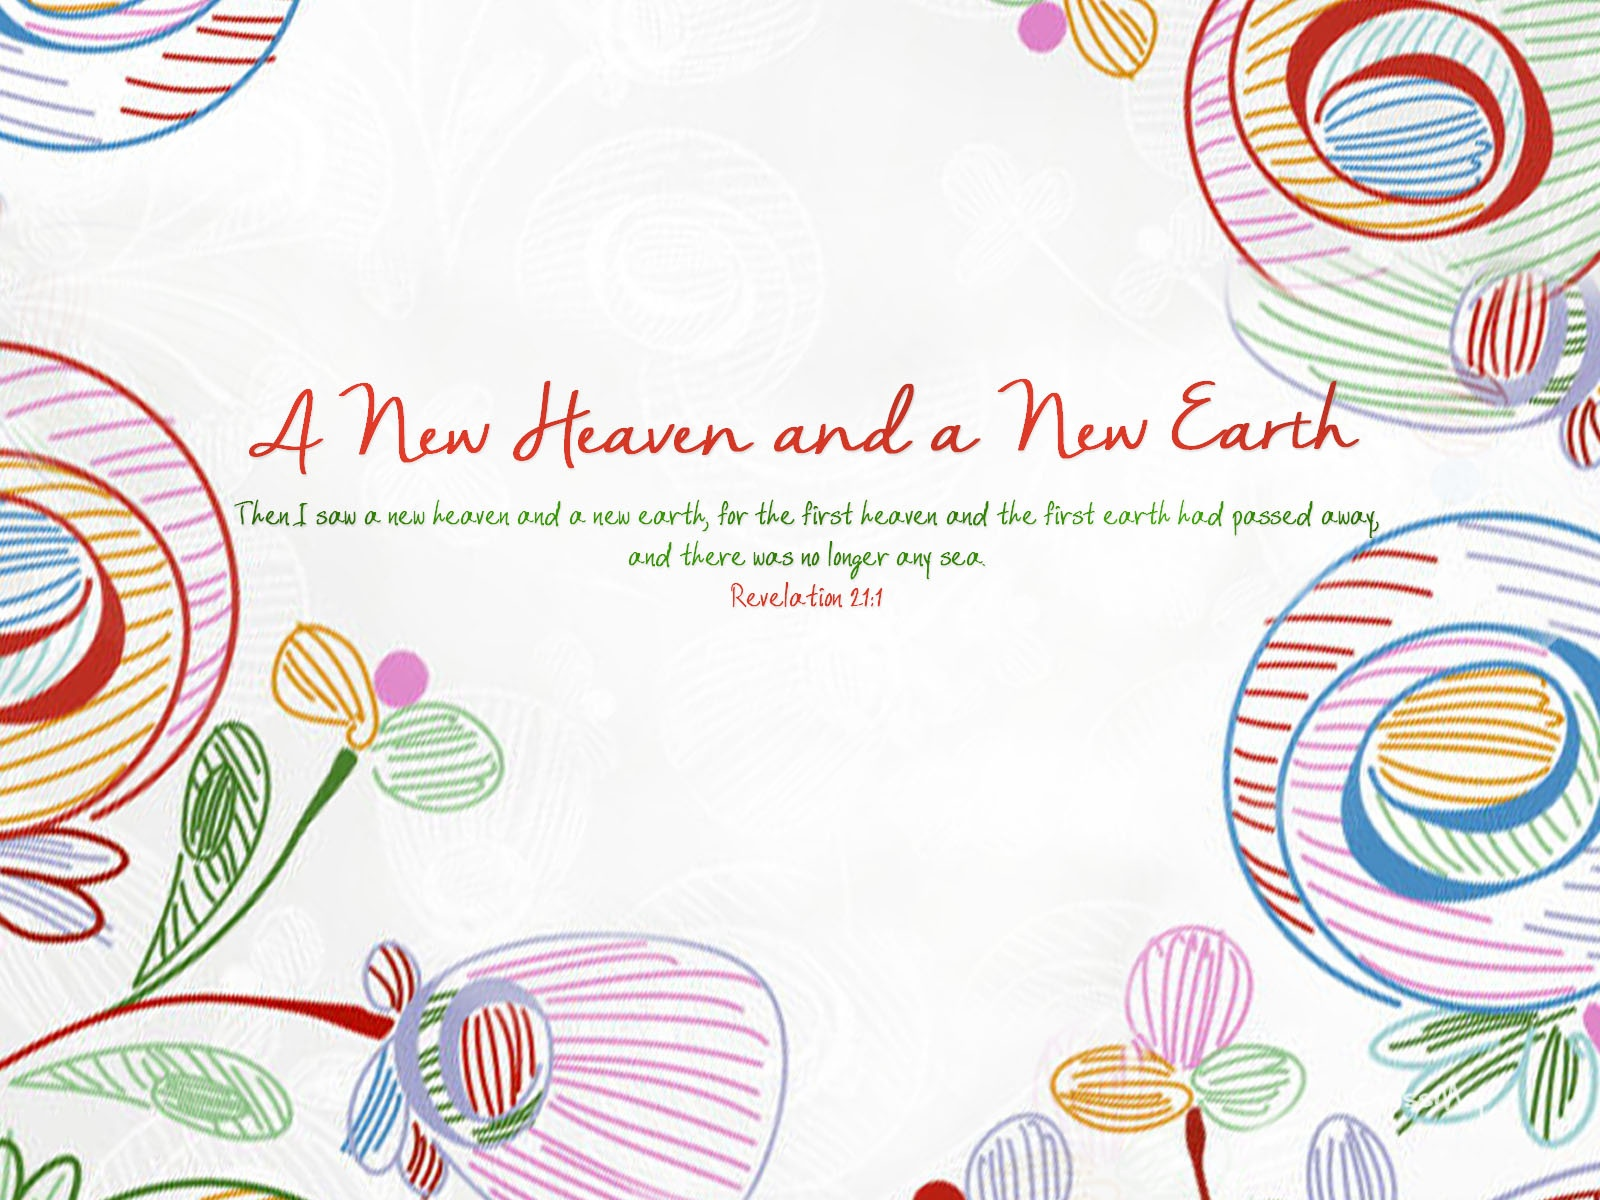 Heaven clipart new earth Heaven a and a A